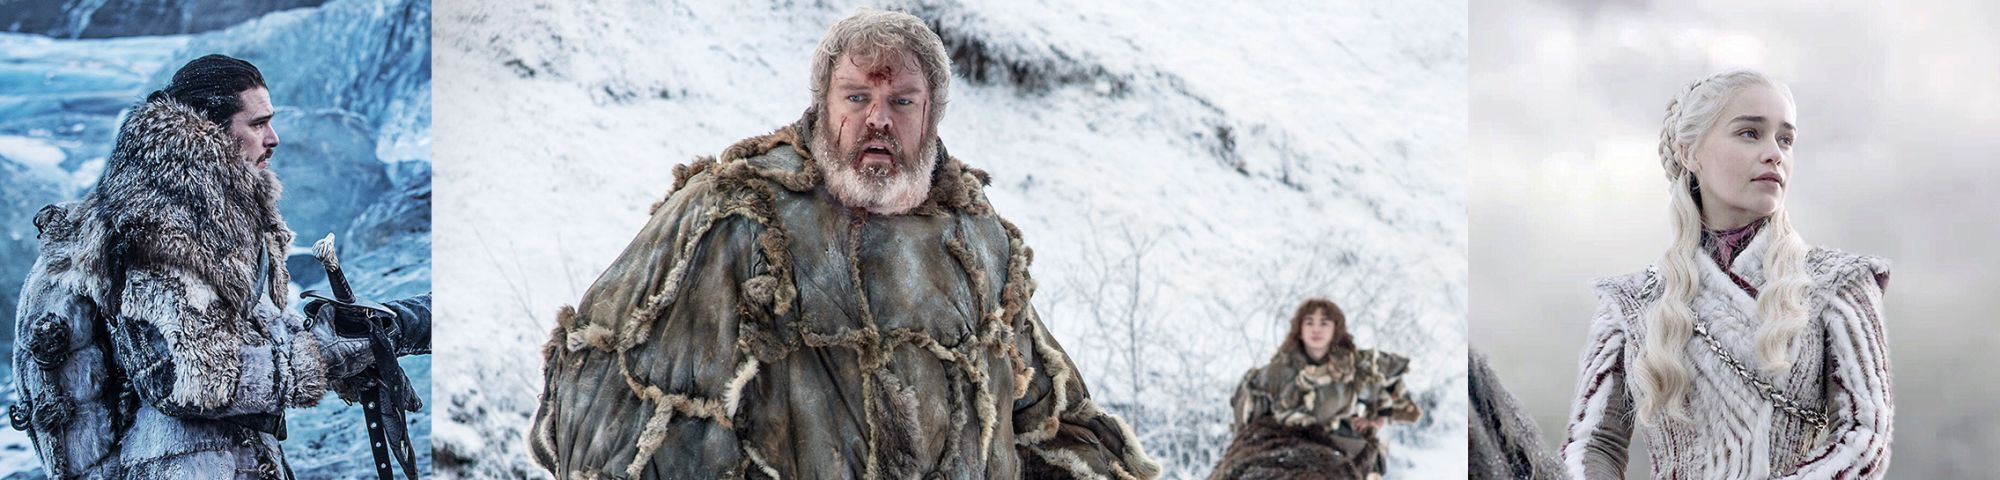 Three different characters from tv series game of thrones wearing different costumes in the snow